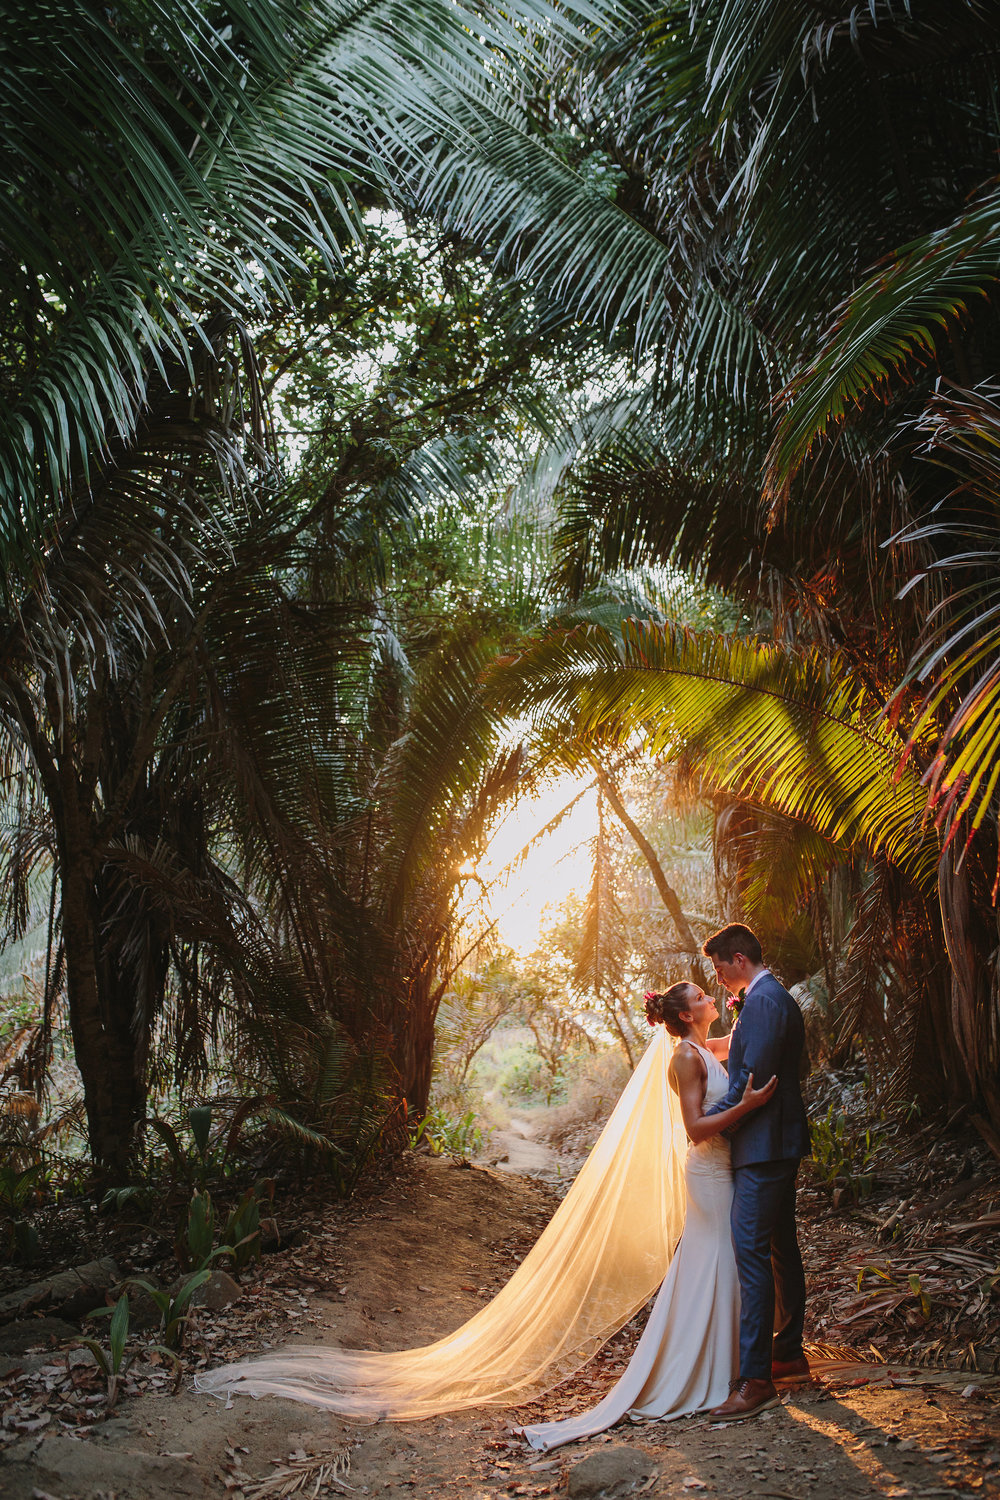 Rustic Tropicana - Photos by Taryn Baxter